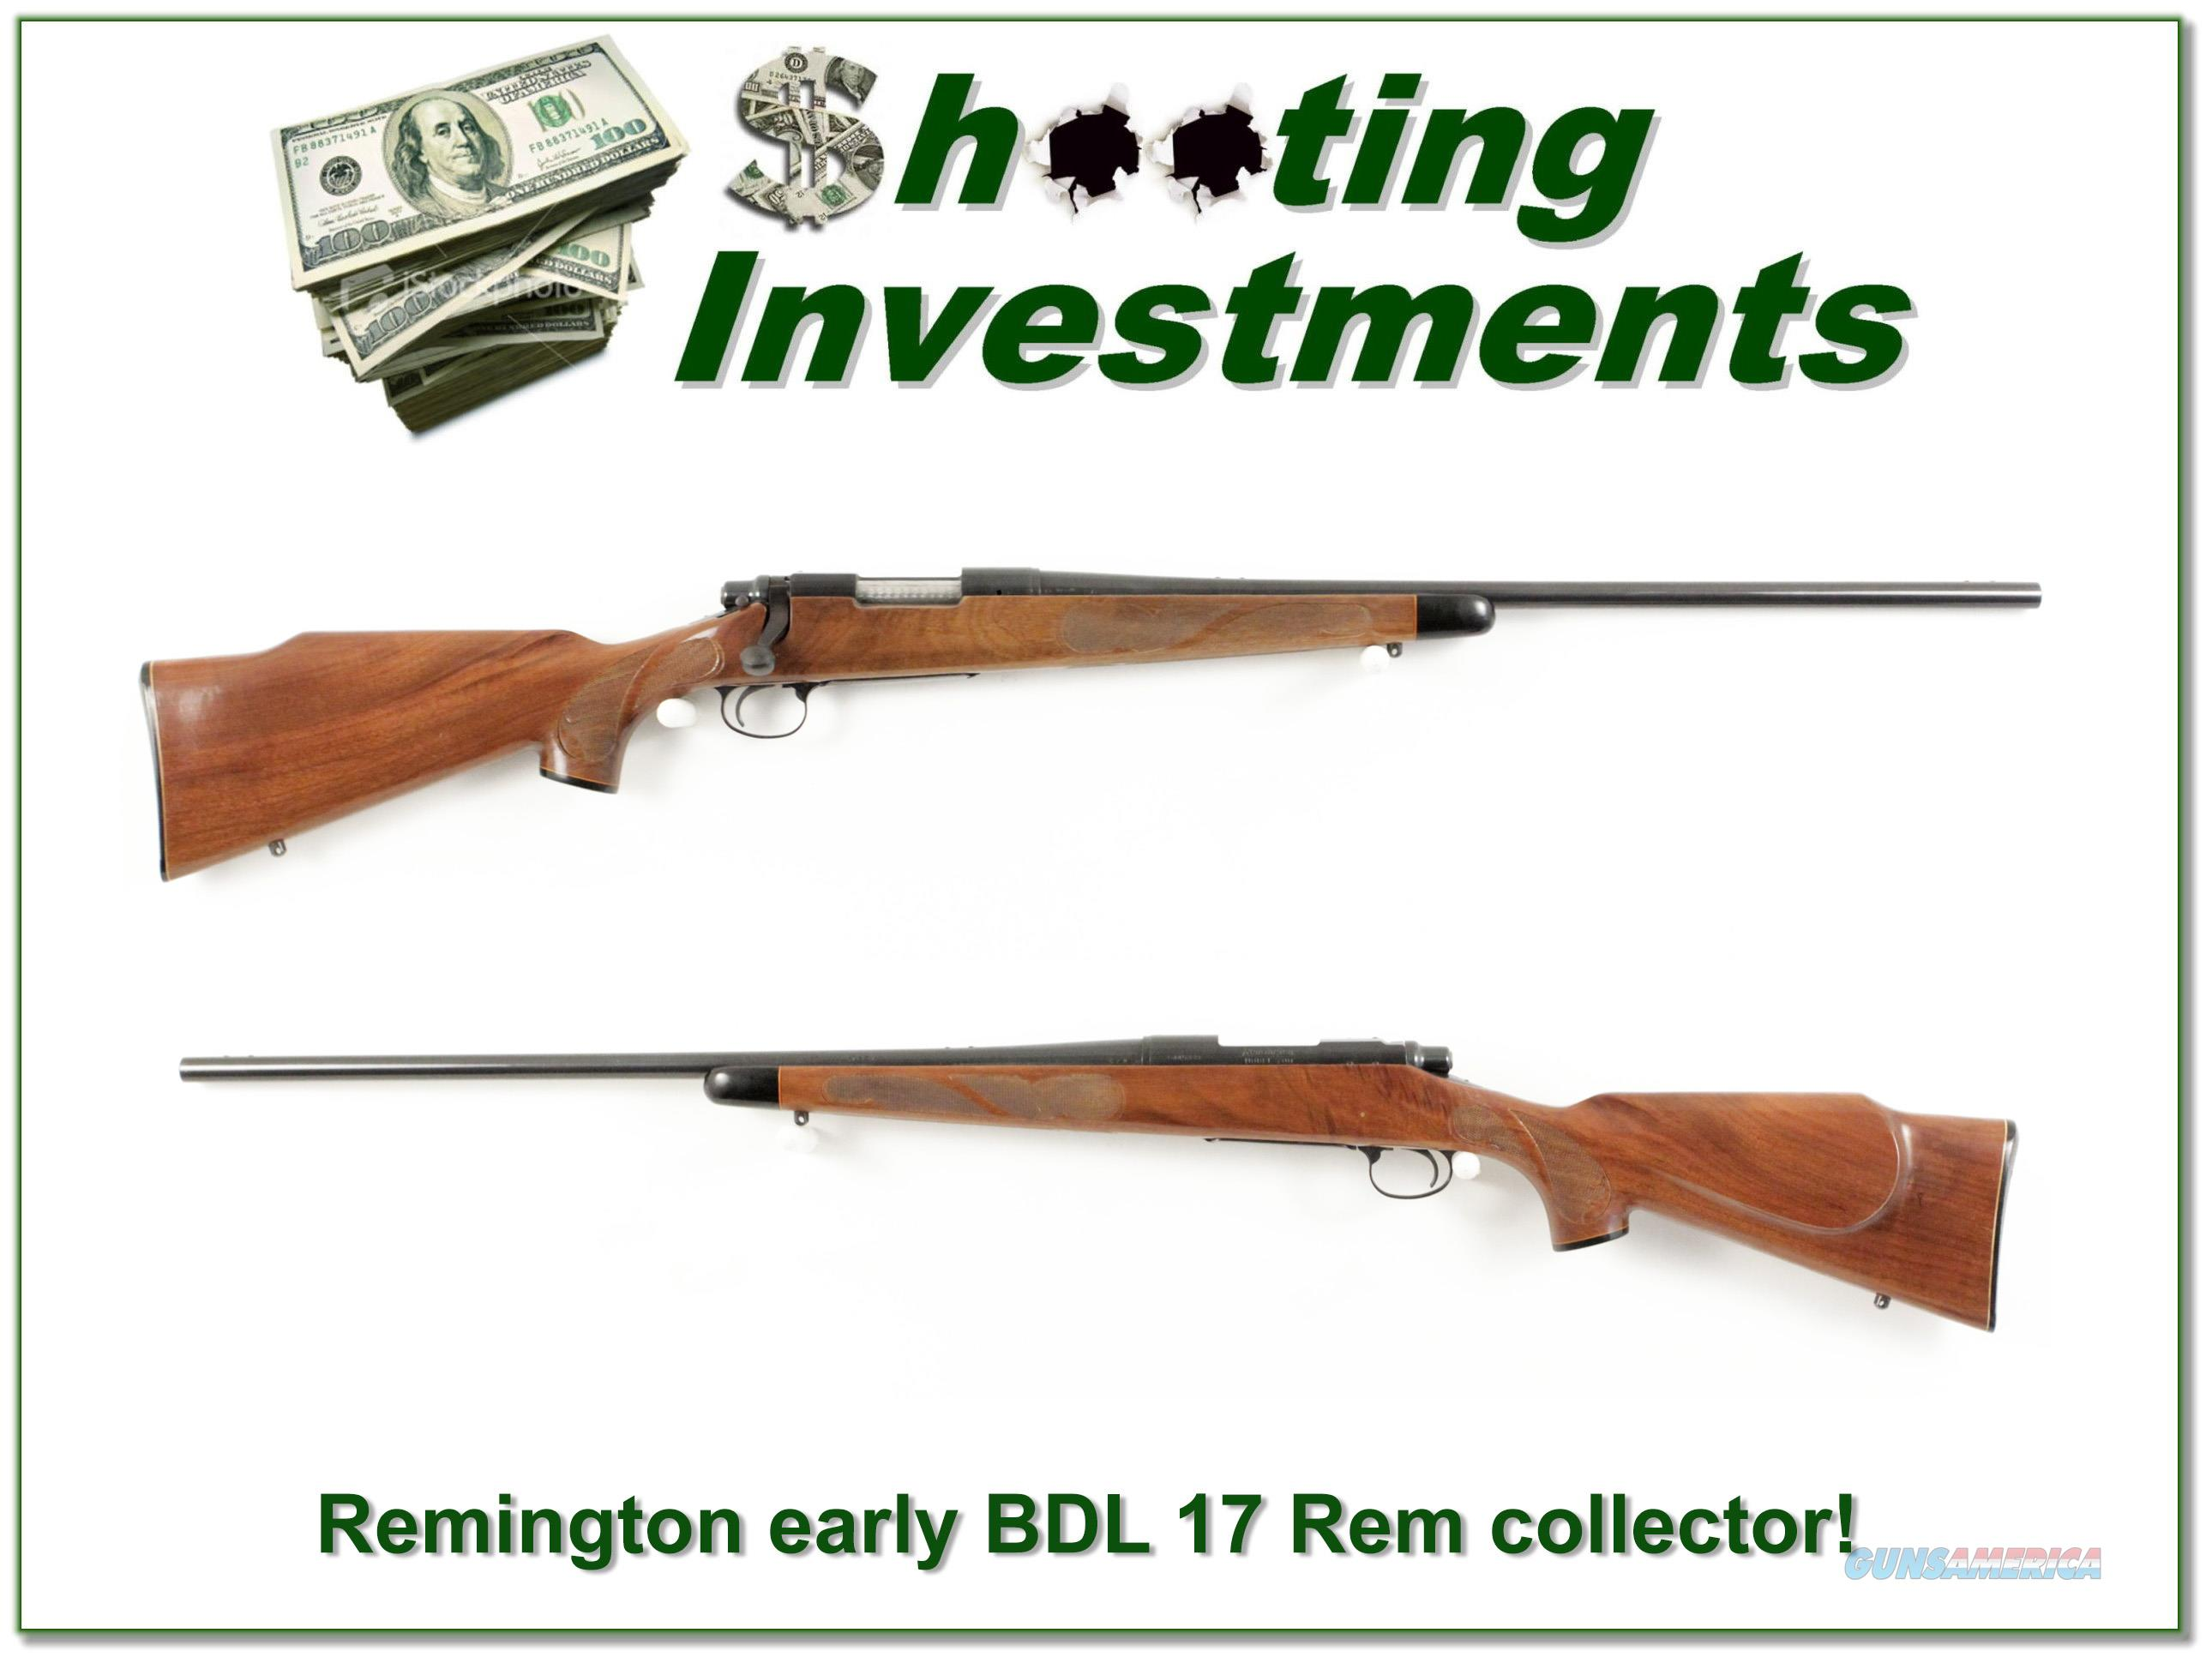 Remington 700 early BDL pressed checkering 17 REM!  Guns > Rifles > Remington Rifles - Modern > Model 700 > Sporting